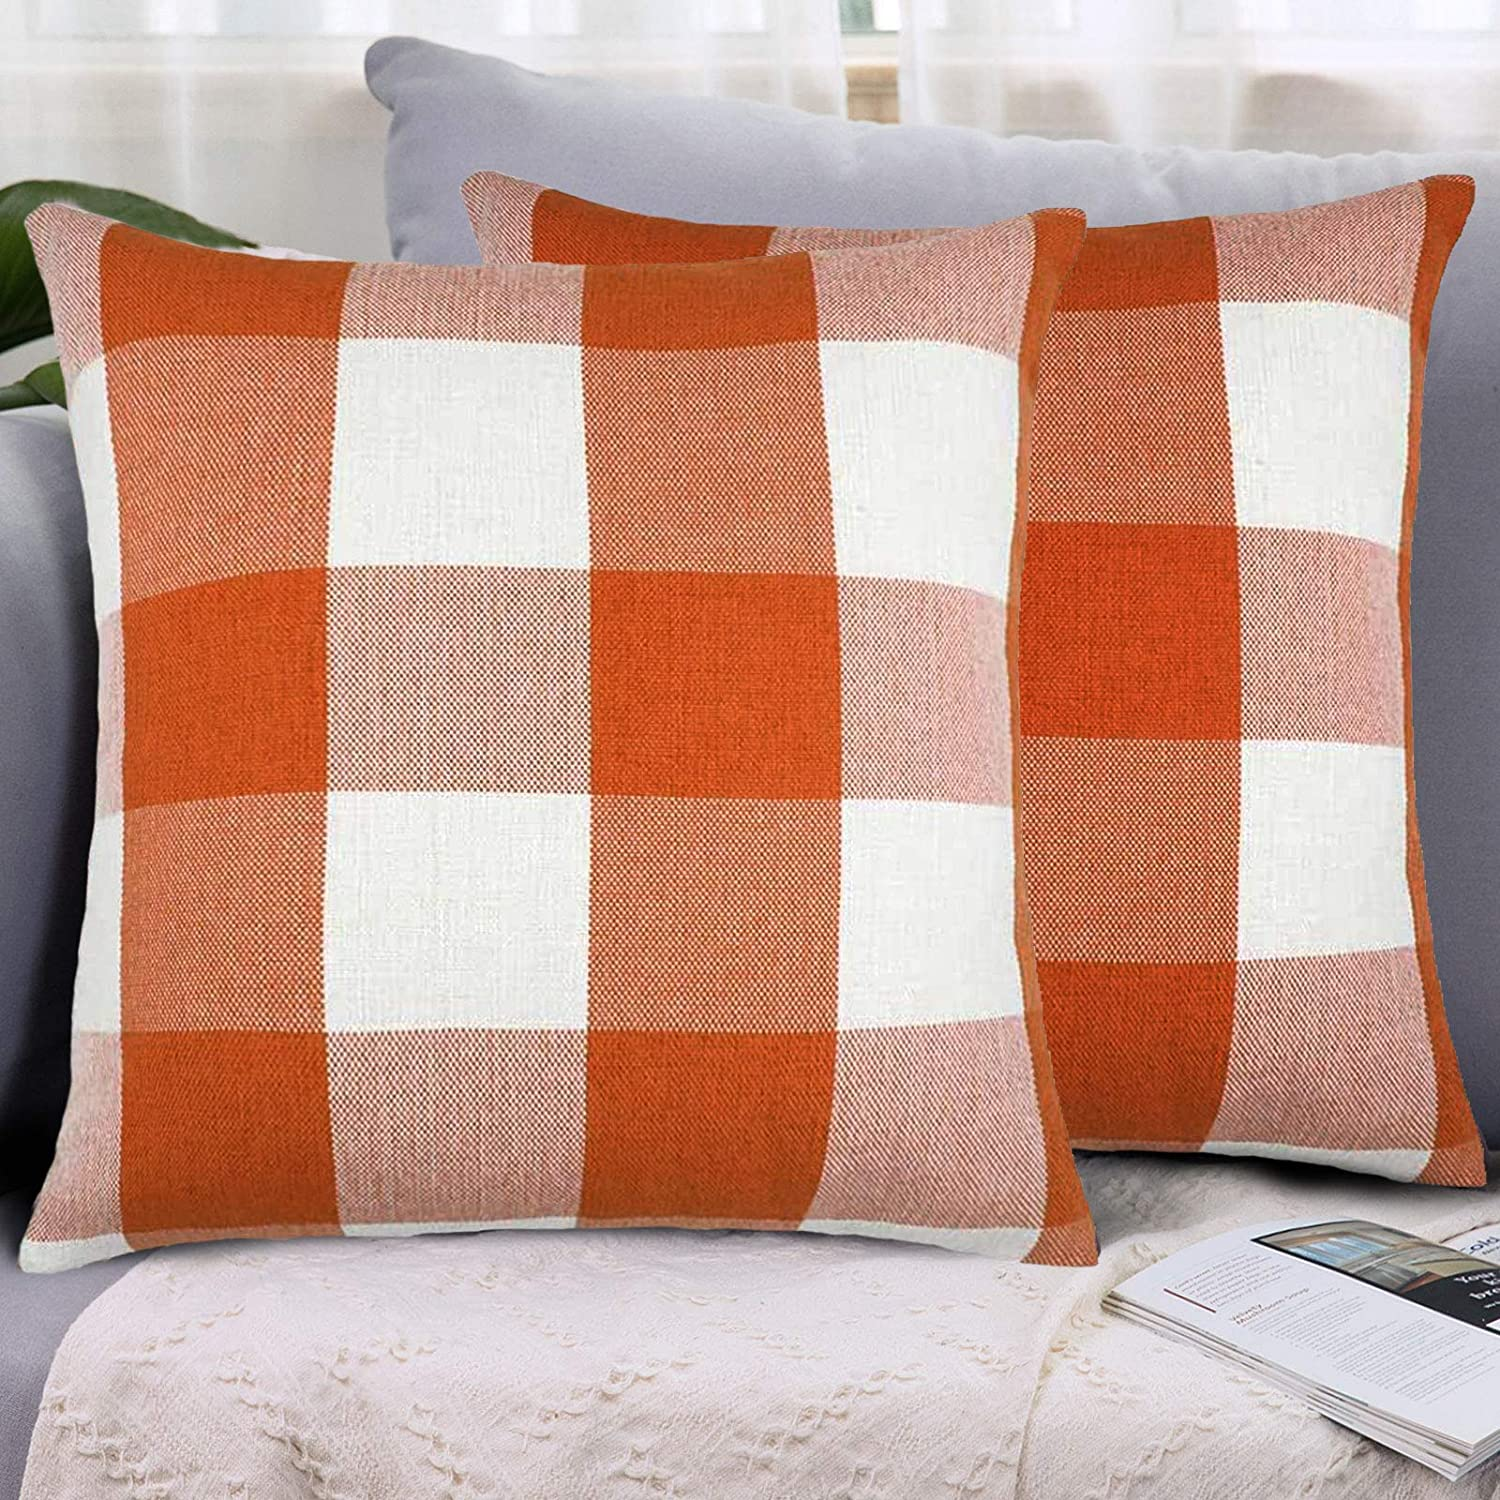 Shipping included LHKIS Throw Pillow Covers 16x16 At the price C Case Cushion Decorative